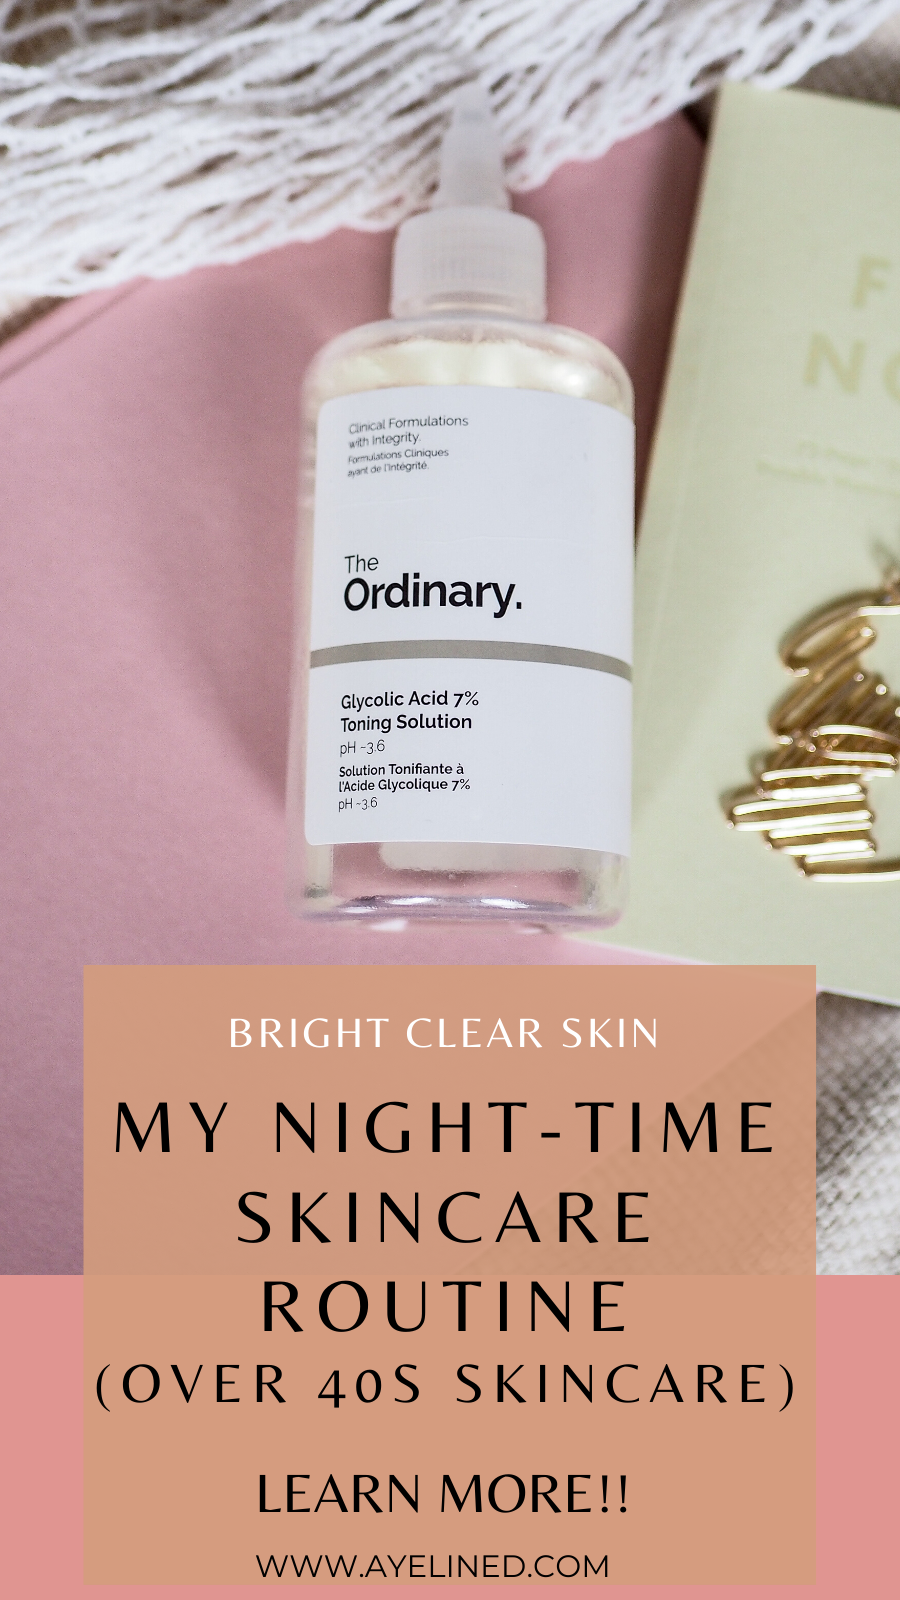 My Evening Skincare Routine With Free Printables In 2020 Skin Care Routine Skin Care Exfoliate Face Products